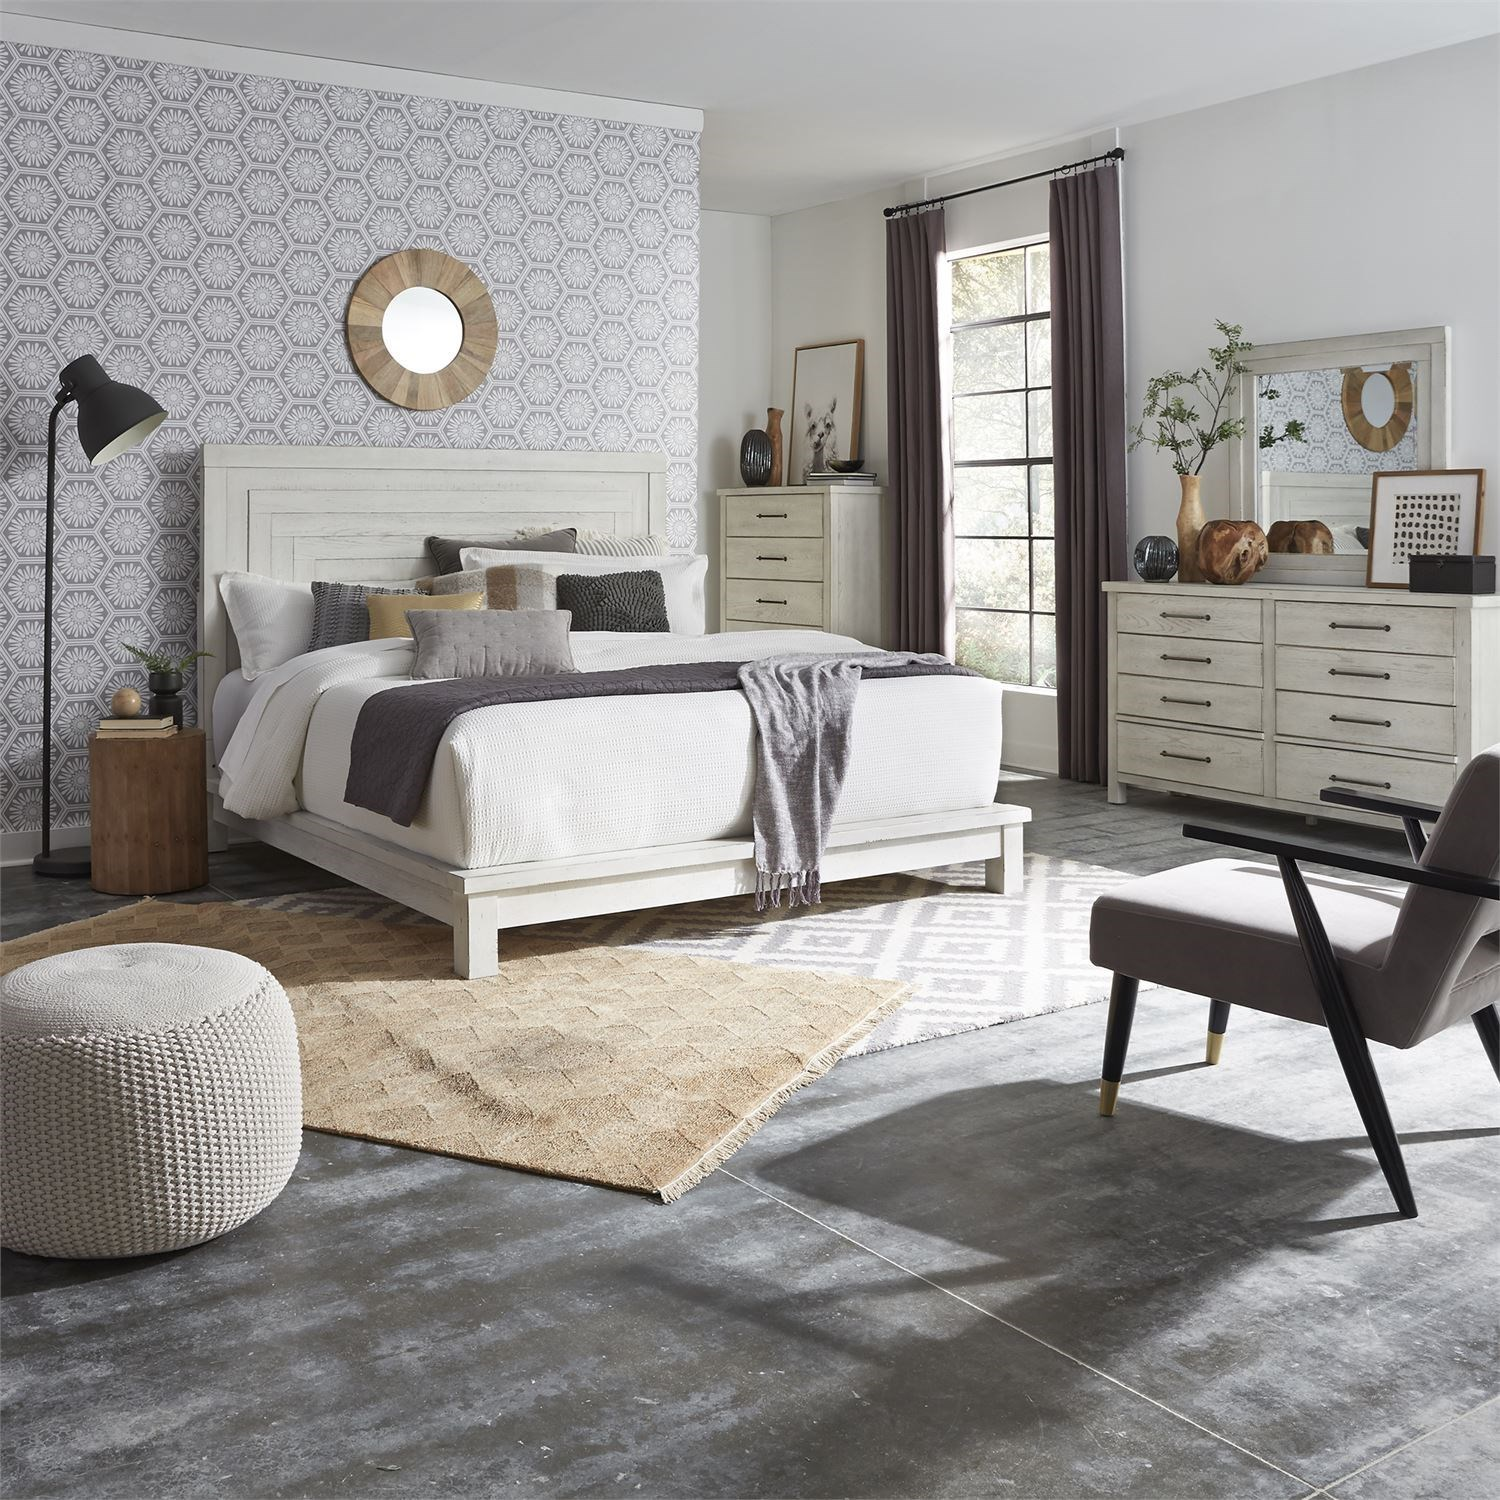 Modern Farmhouse King Bedroom Group by Liberty Furniture at Beck's Furniture